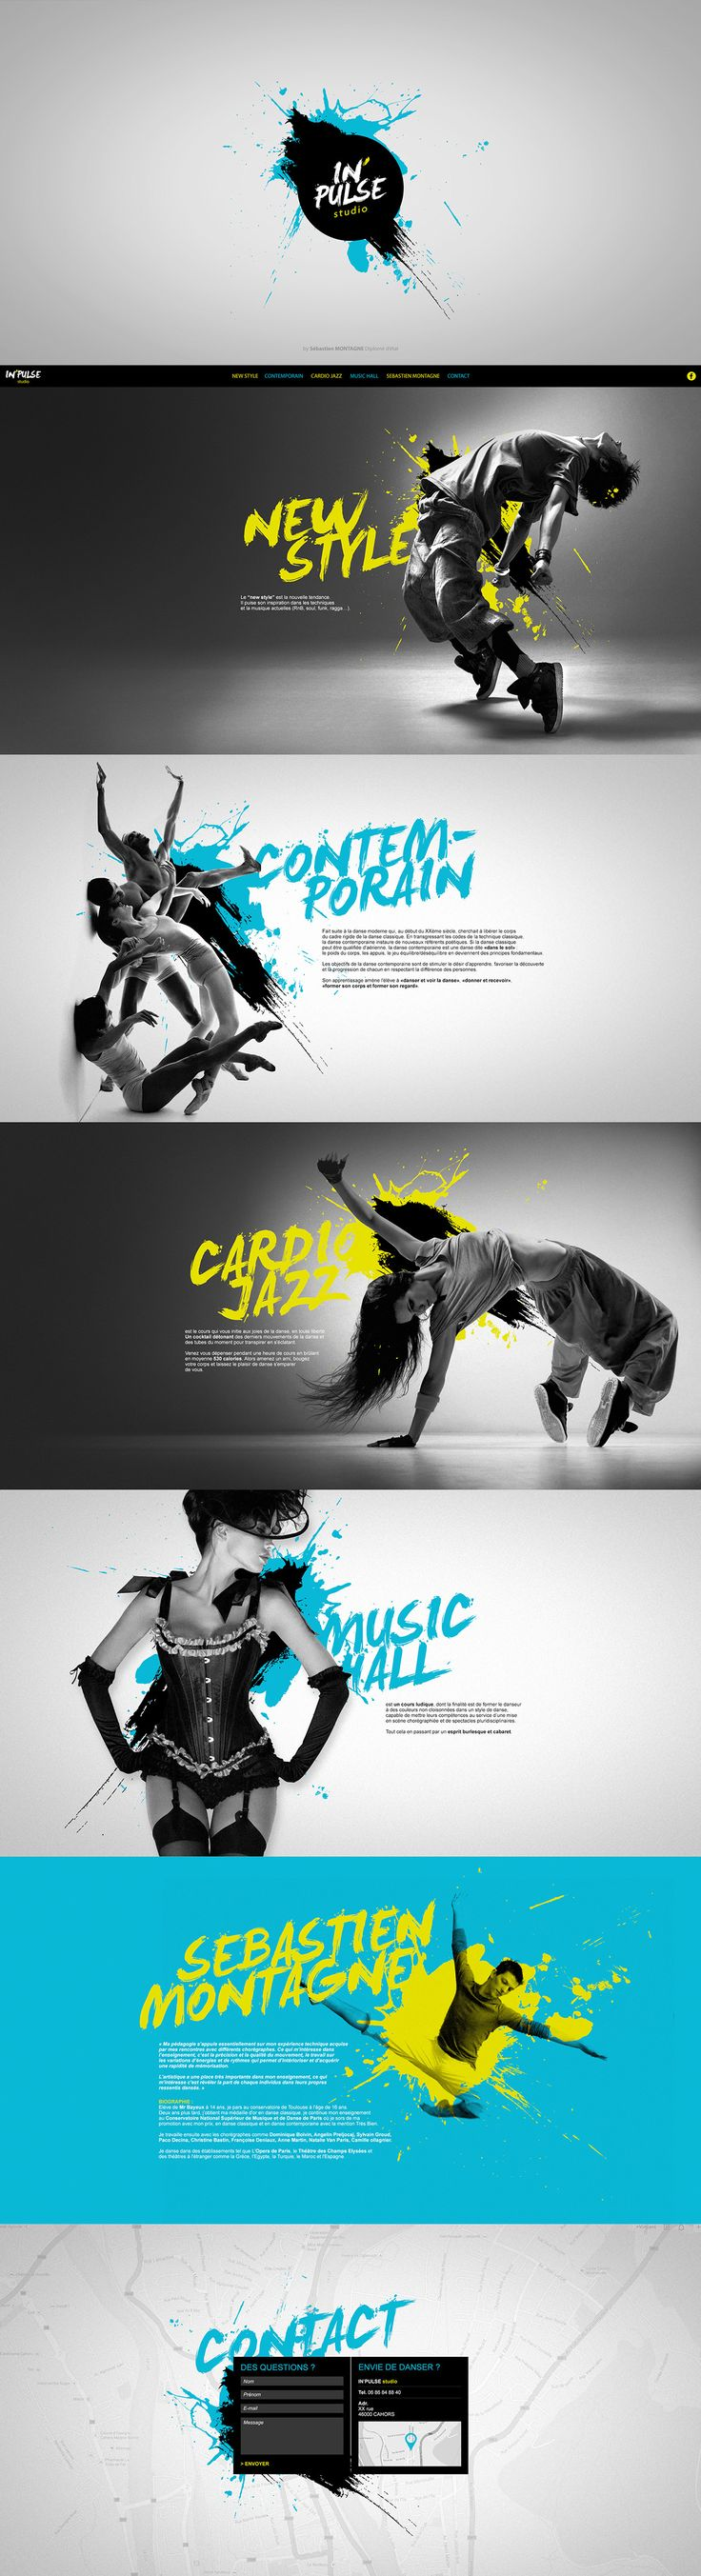 IN'PULSE studio on Behance #snevi #website